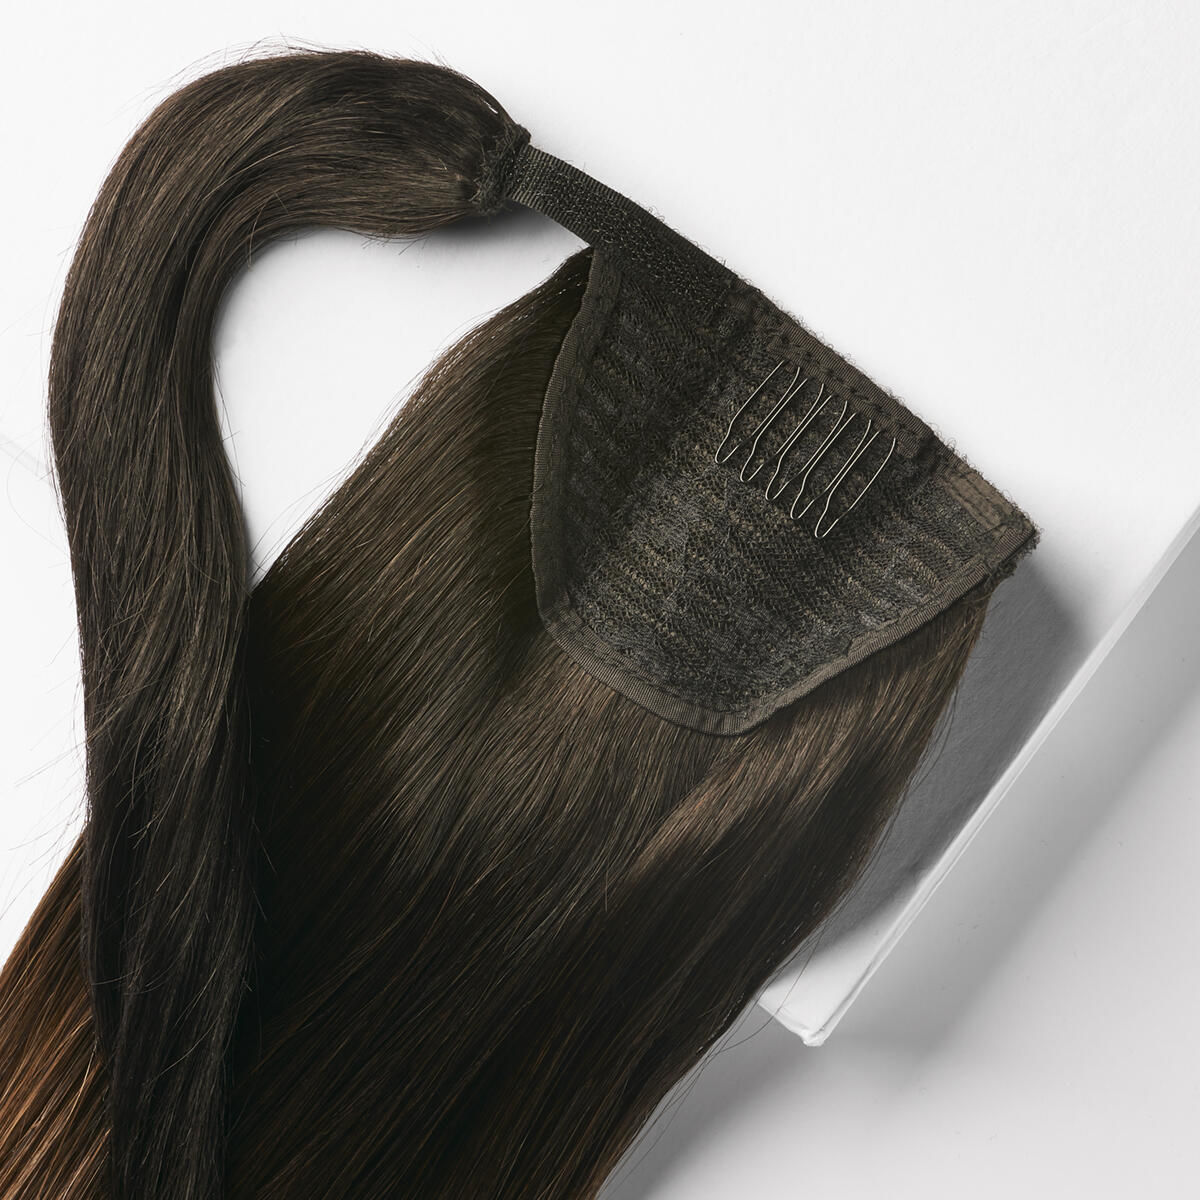 Clip-in Ponytail Ponytail made of real hair O1.2/2.0 Black Brown Ombre 40 cm